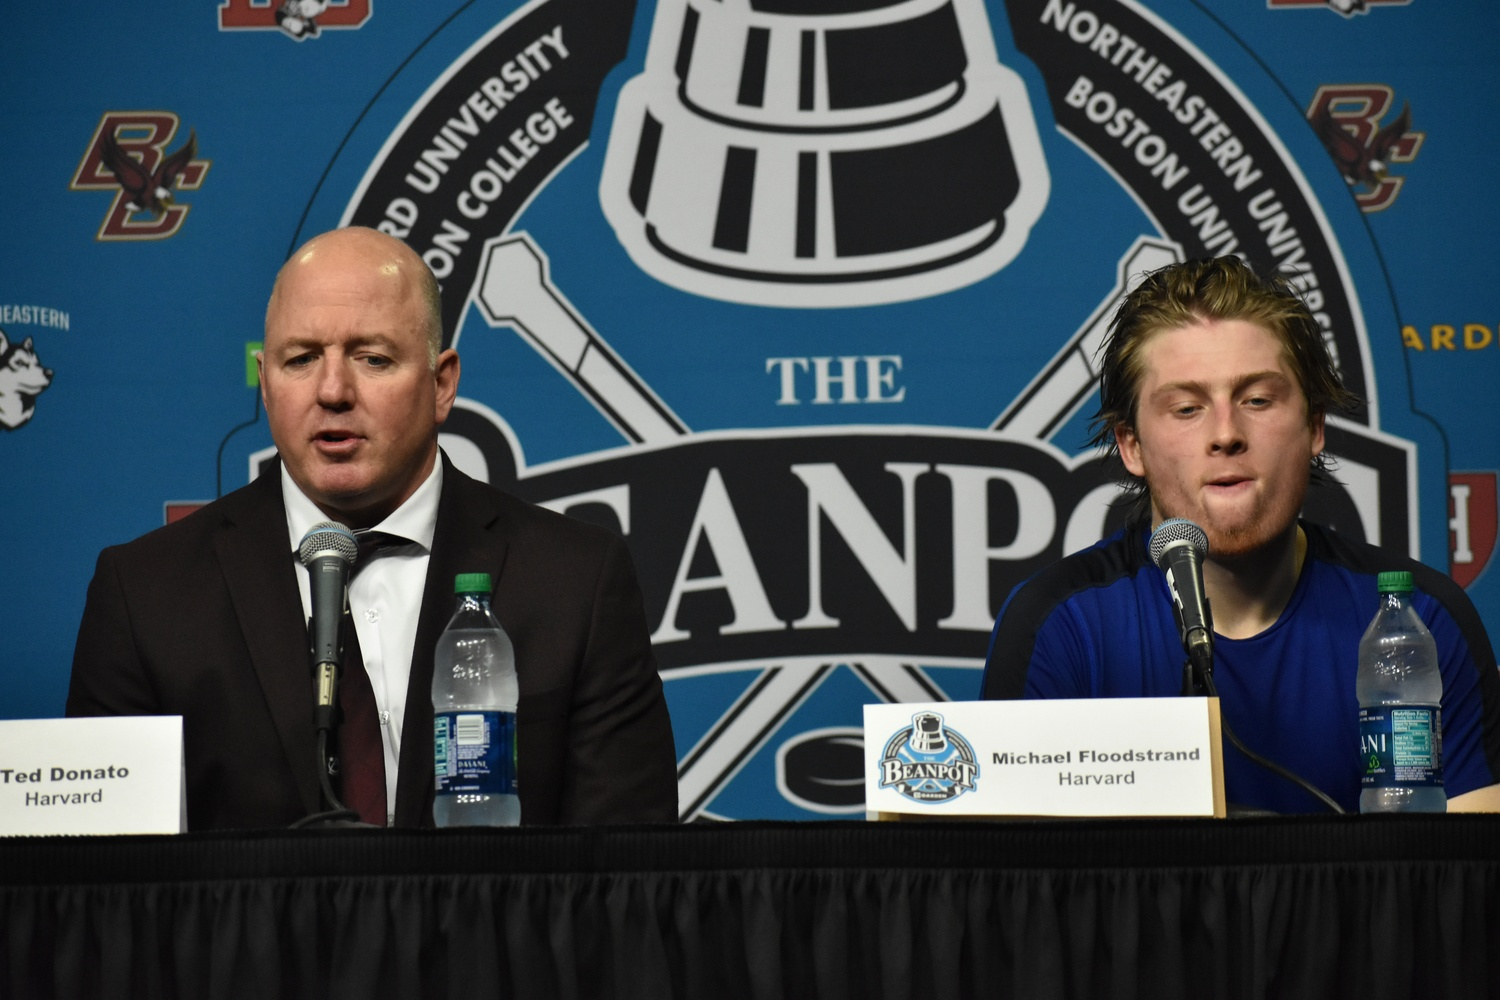 Harvard coach Ted Donato and co-captain Michael Floodstrand were both disheartened and frustrated after the disappointing loss.